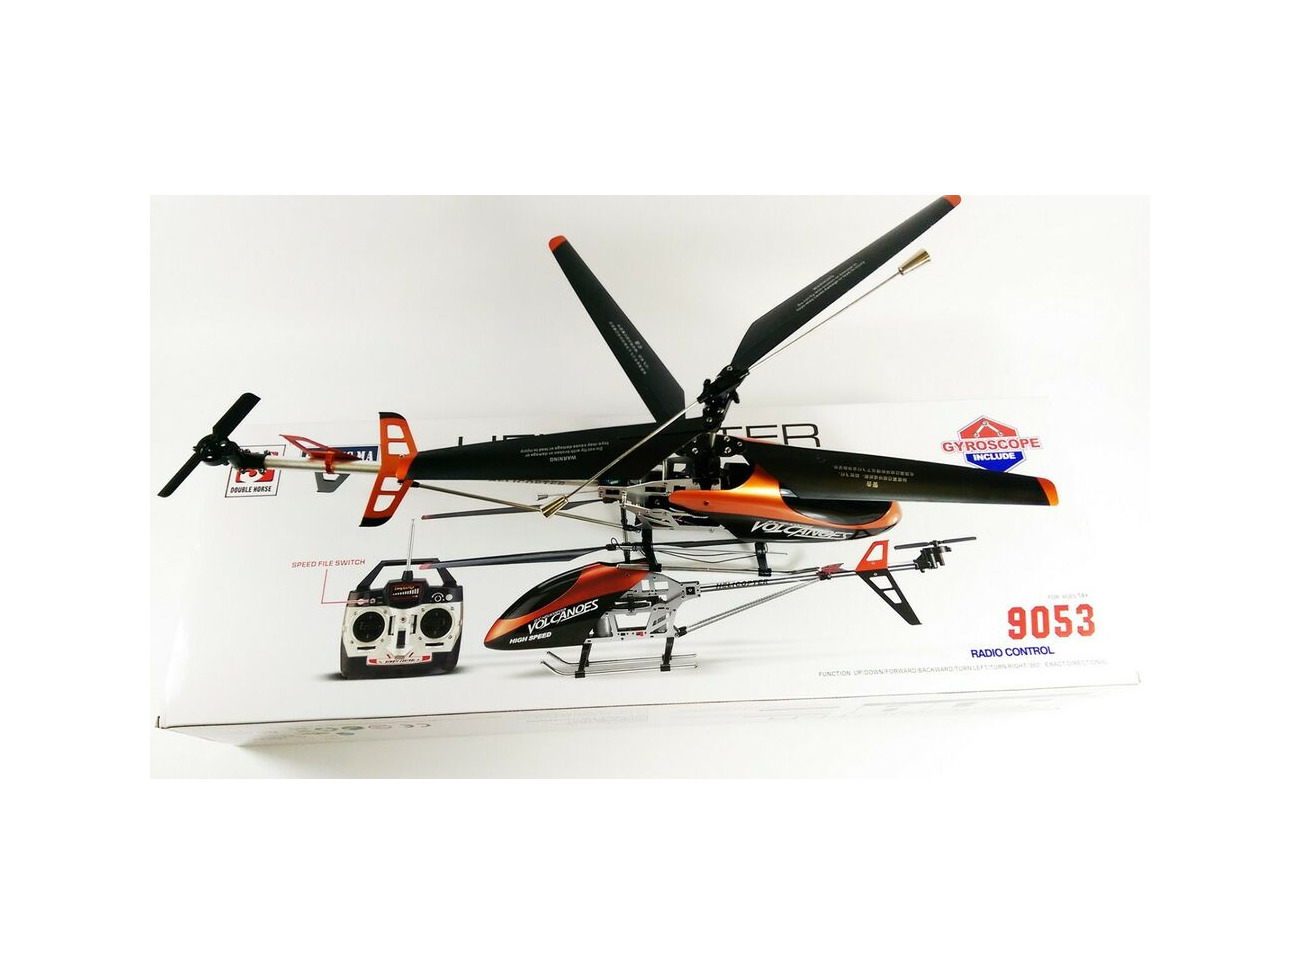 Buy VOLITATION 9053 RC RADIO REMOTE CONTROL HELICOPTER LARGE OUTDOOR